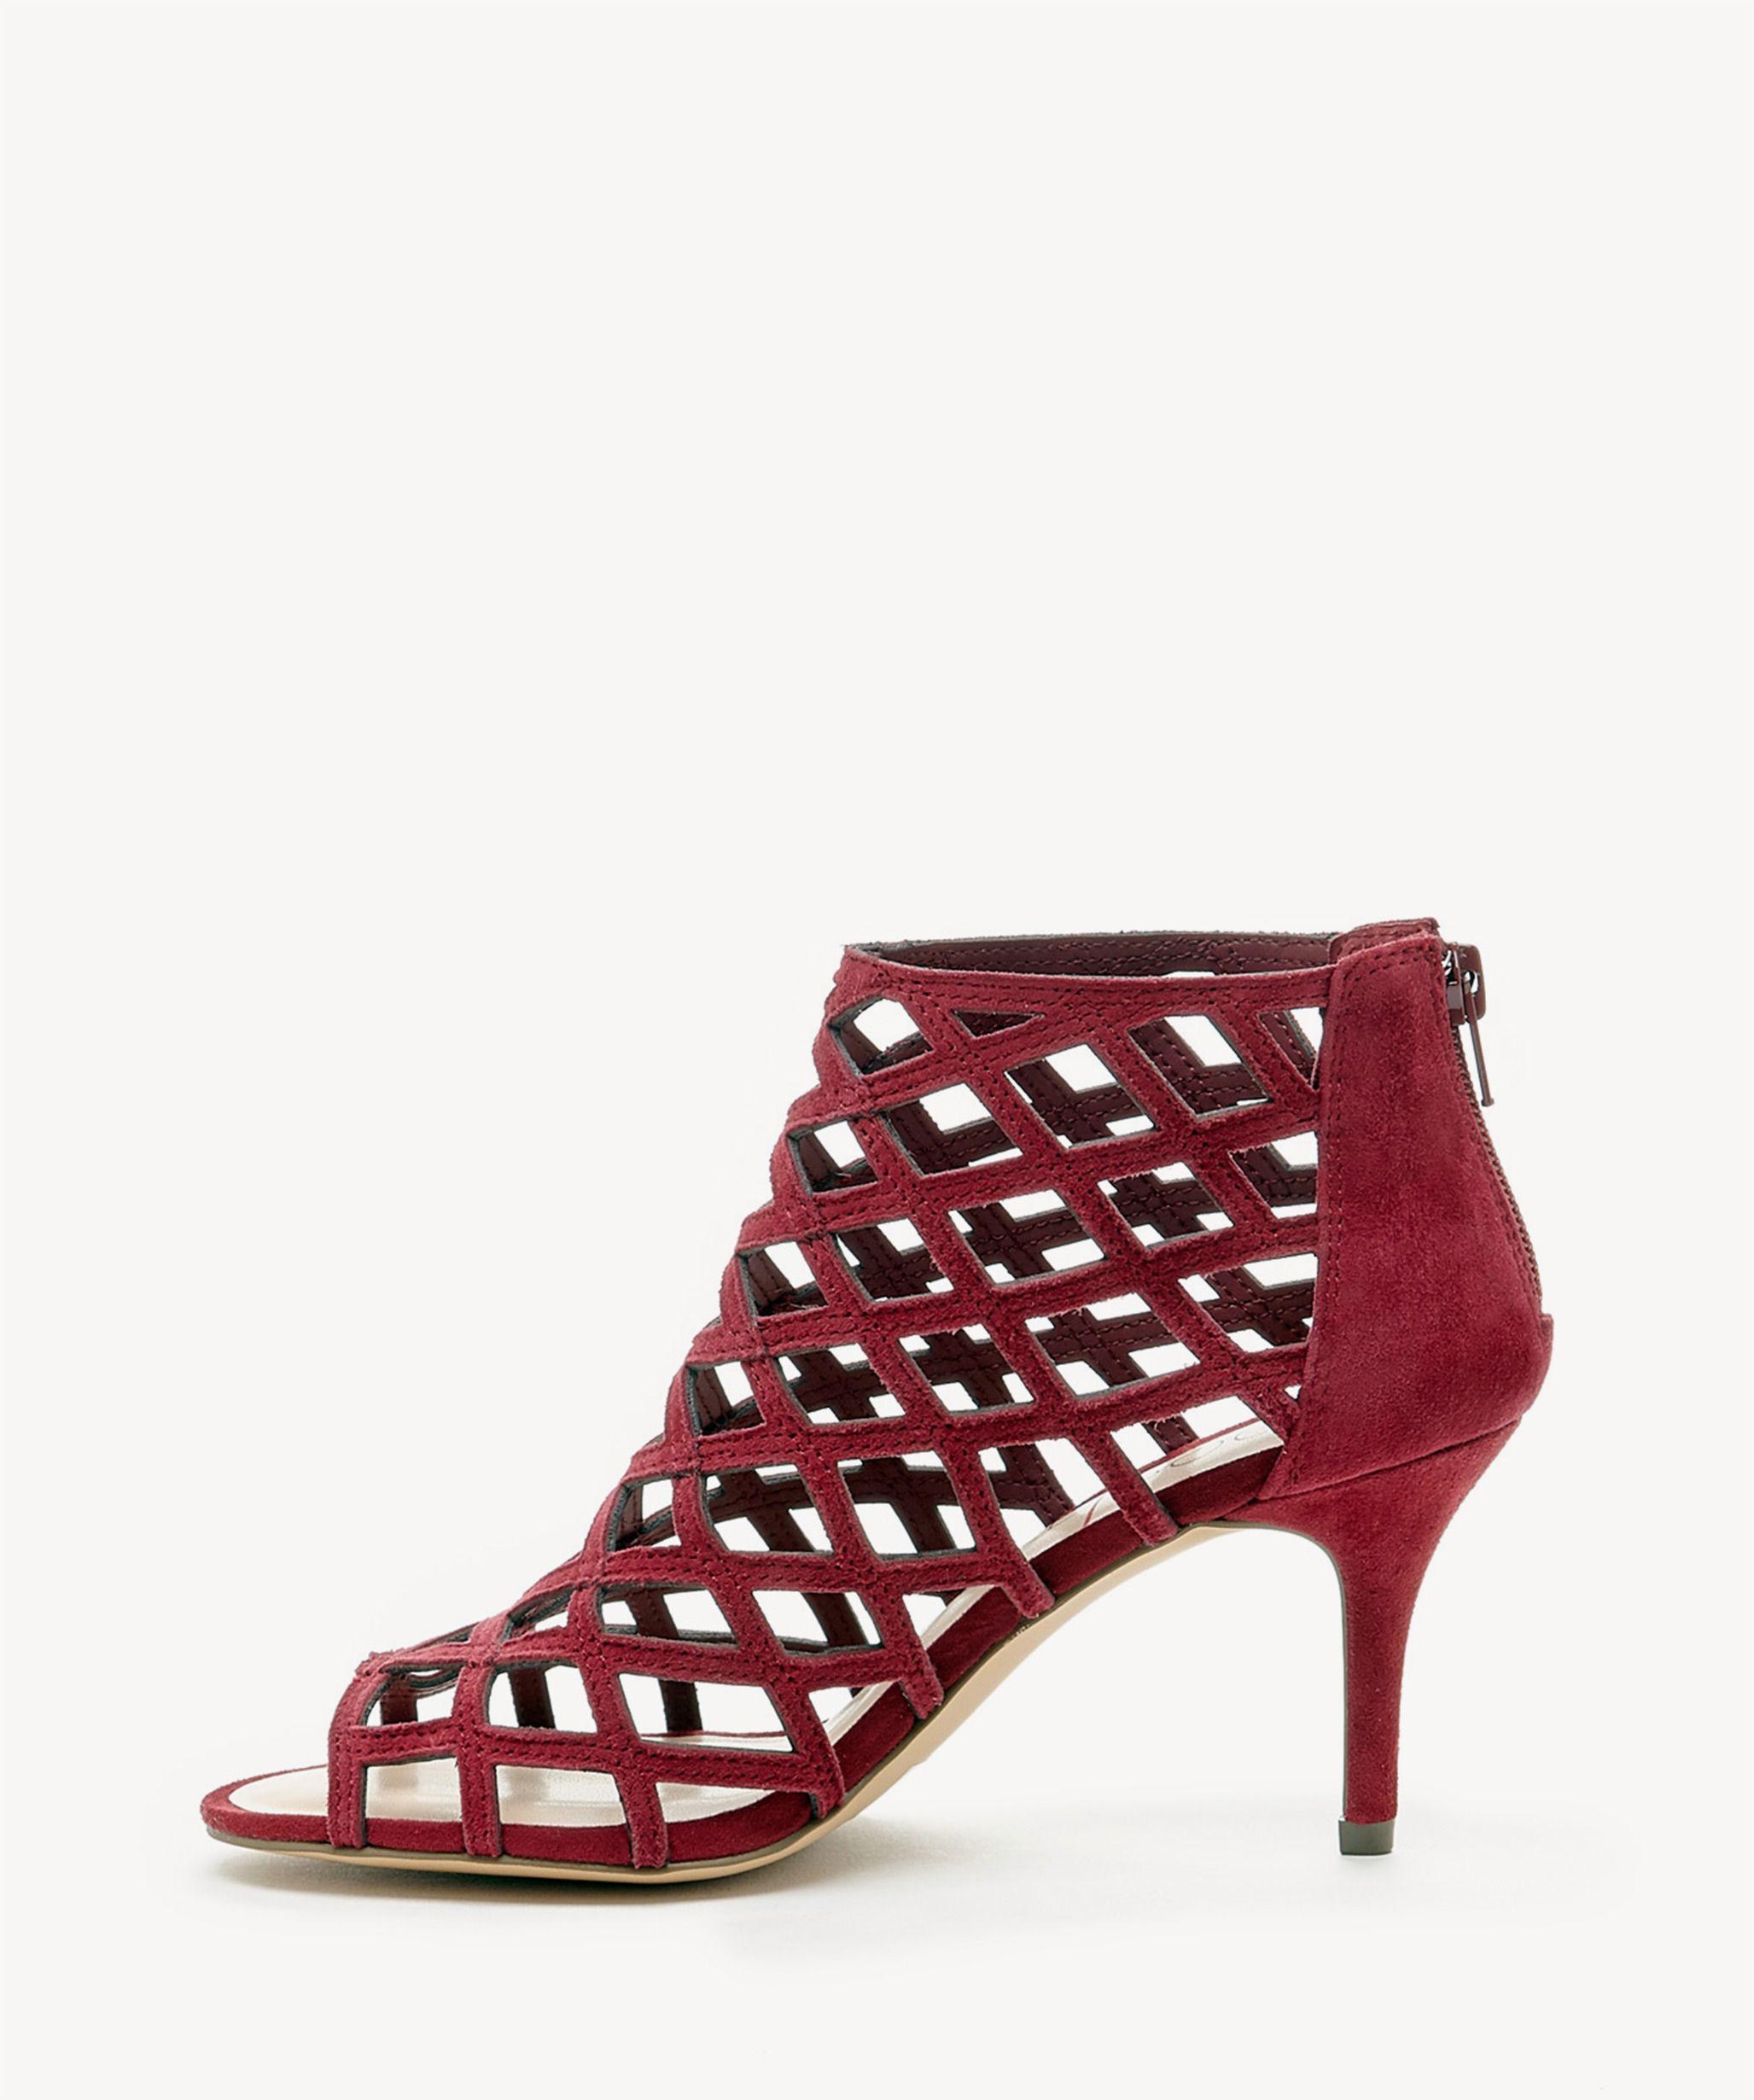 0192d04e84b0 Lyst - Sole Society Portia Caged Mid Heel in Red